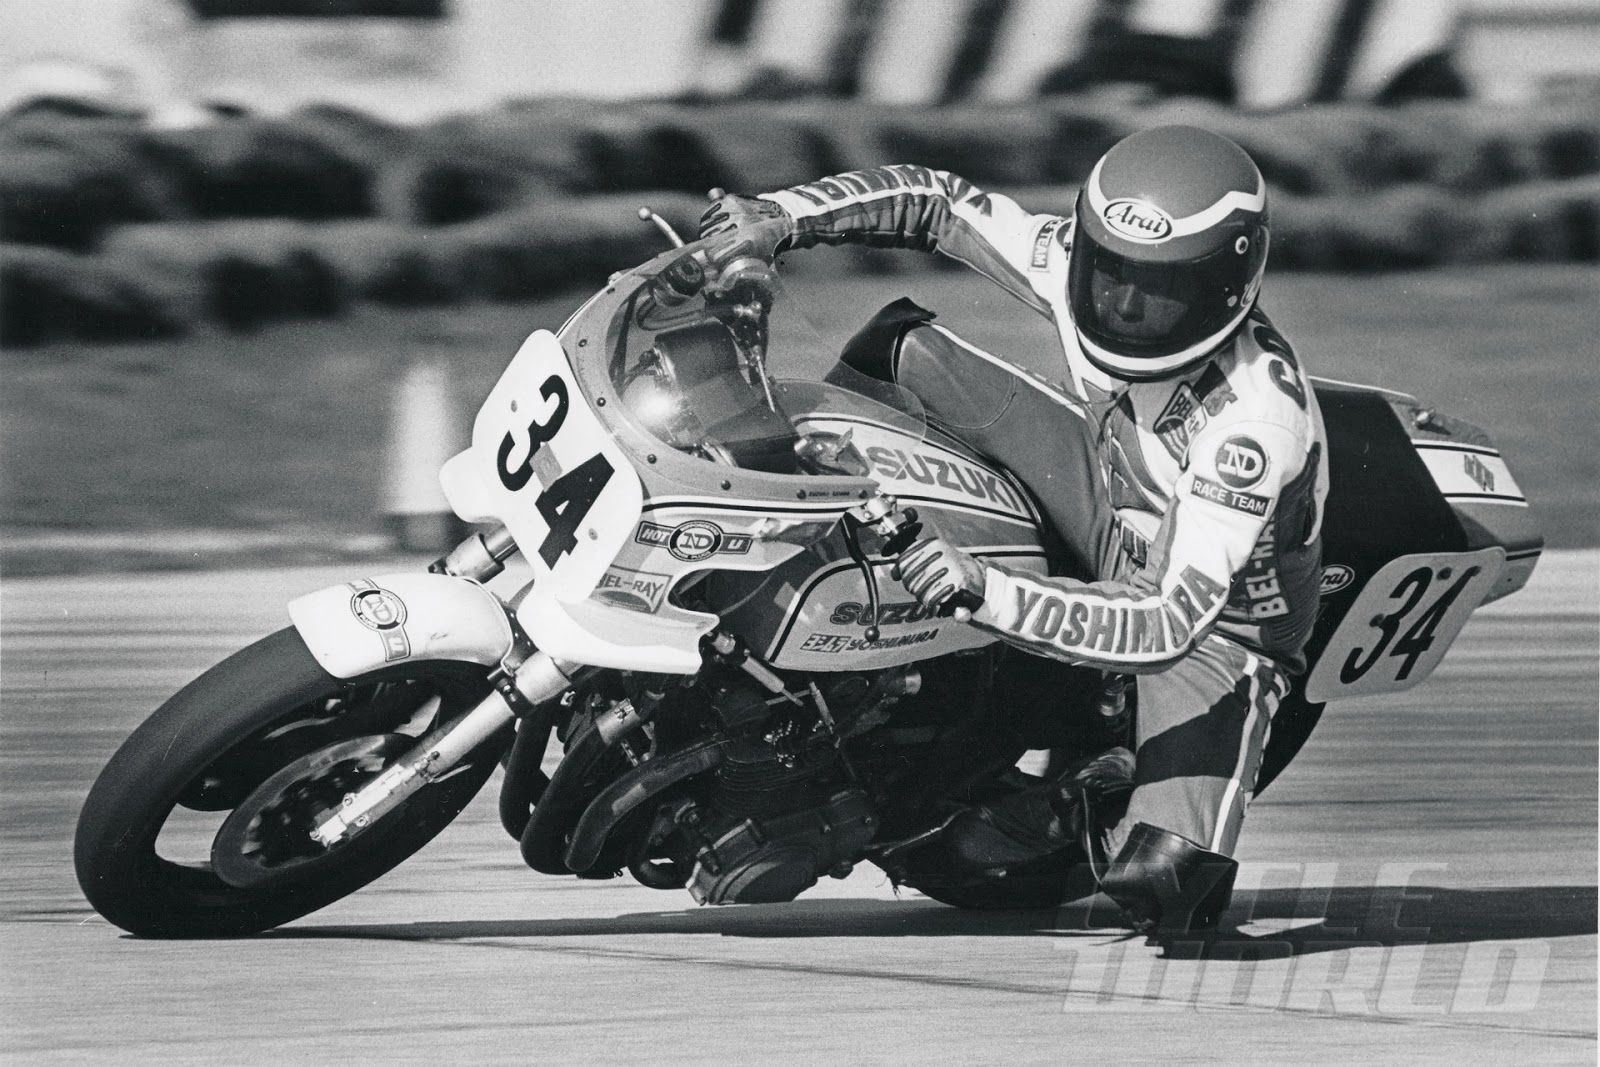 Wes cooley yoshimura on the legendary suzuki gs 1000 s for Cooley motors used cars